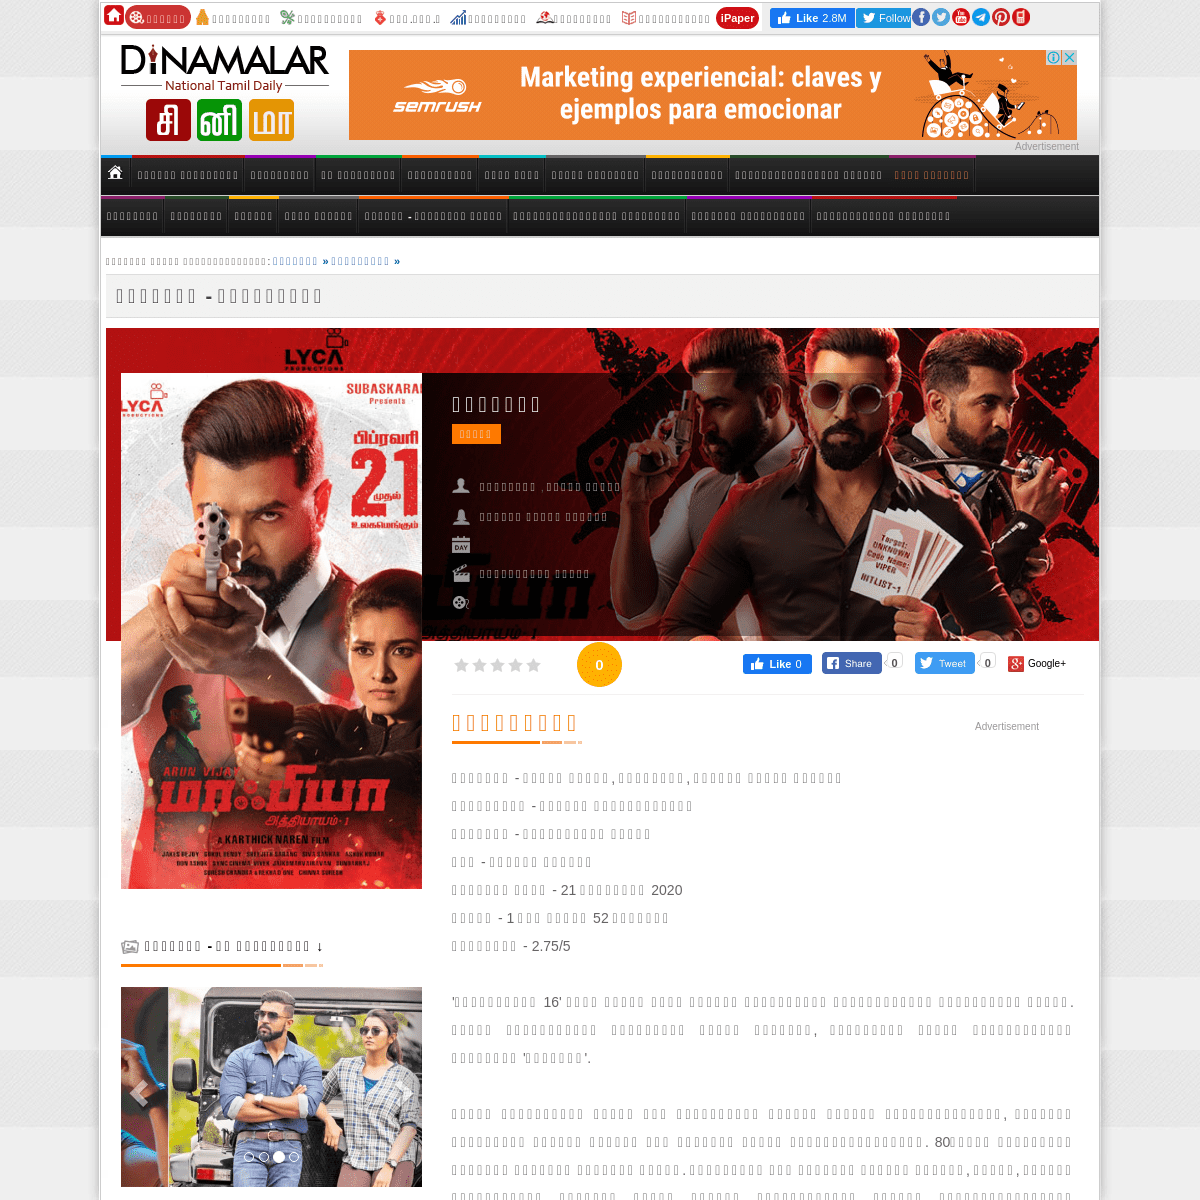 ArchiveBay.com - cinema.dinamalar.com/movie-review/2858/Mafia/ - மாஃபியா - விமர்சனம் {0-5} - Mafia Cinema Movie Review - - Movie Reviews - Tamil movies- Tamil ac